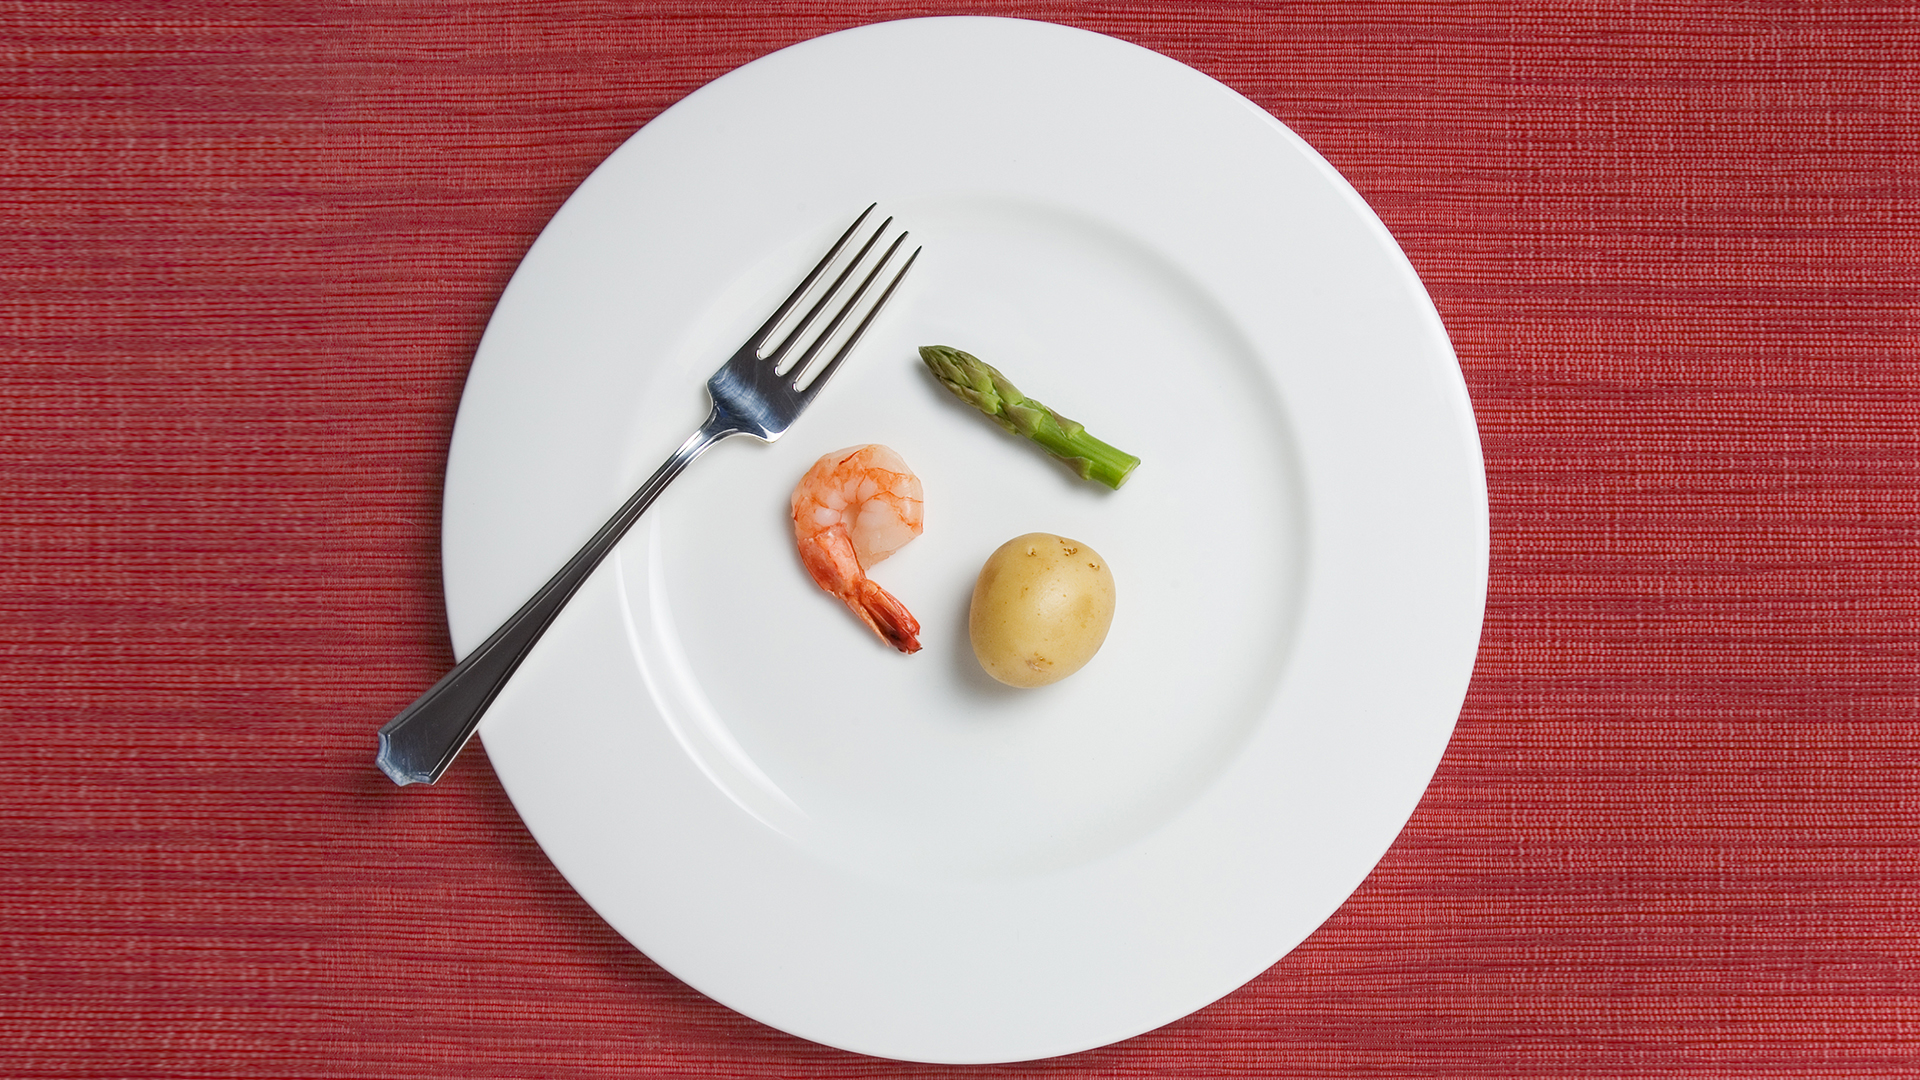 today.com - Could intermittent fasting help control diabetes symptoms?